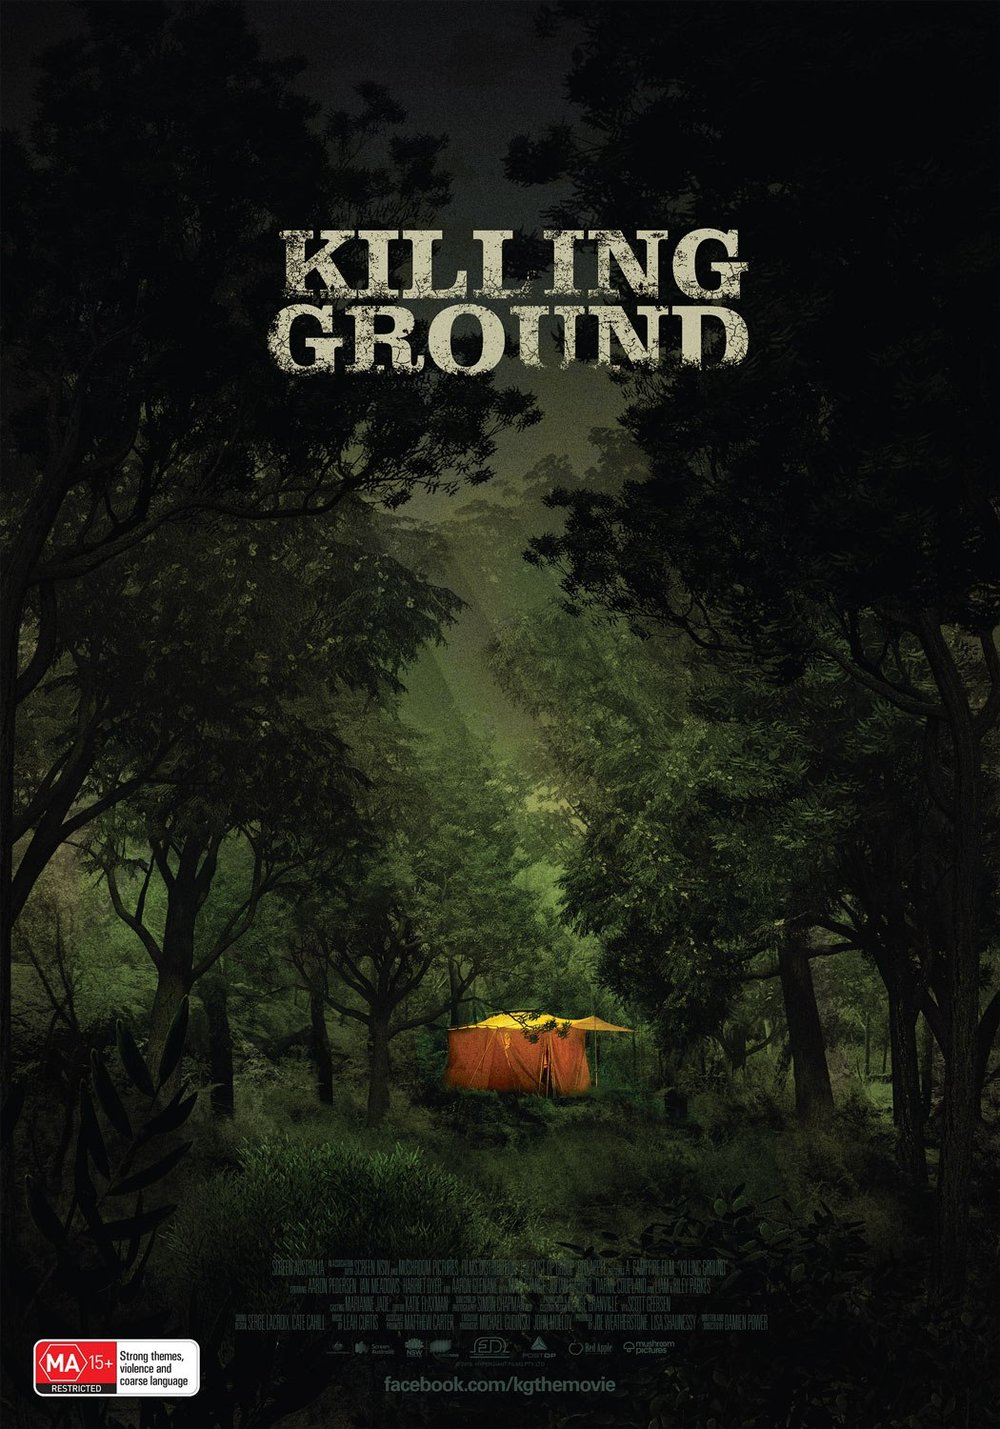 Killing-Ground-movie-poster.jpg